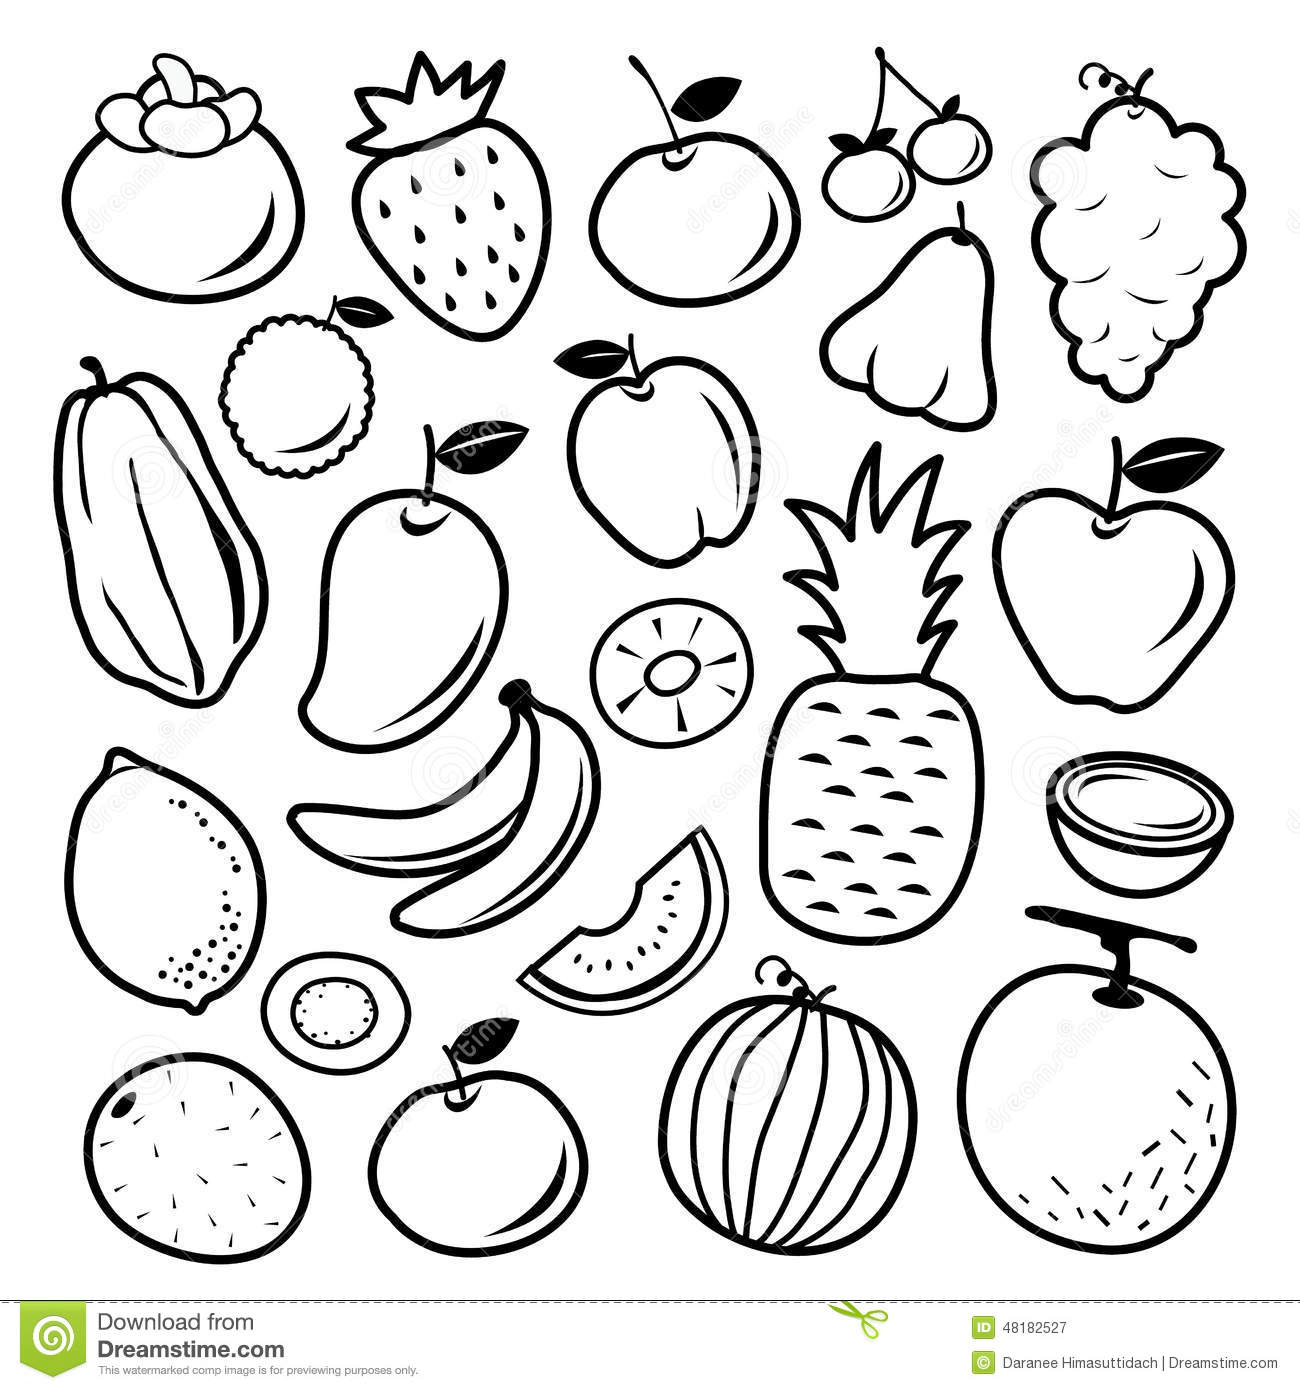 Fruit Cartoon Black Icon Design Vector Stock Vector